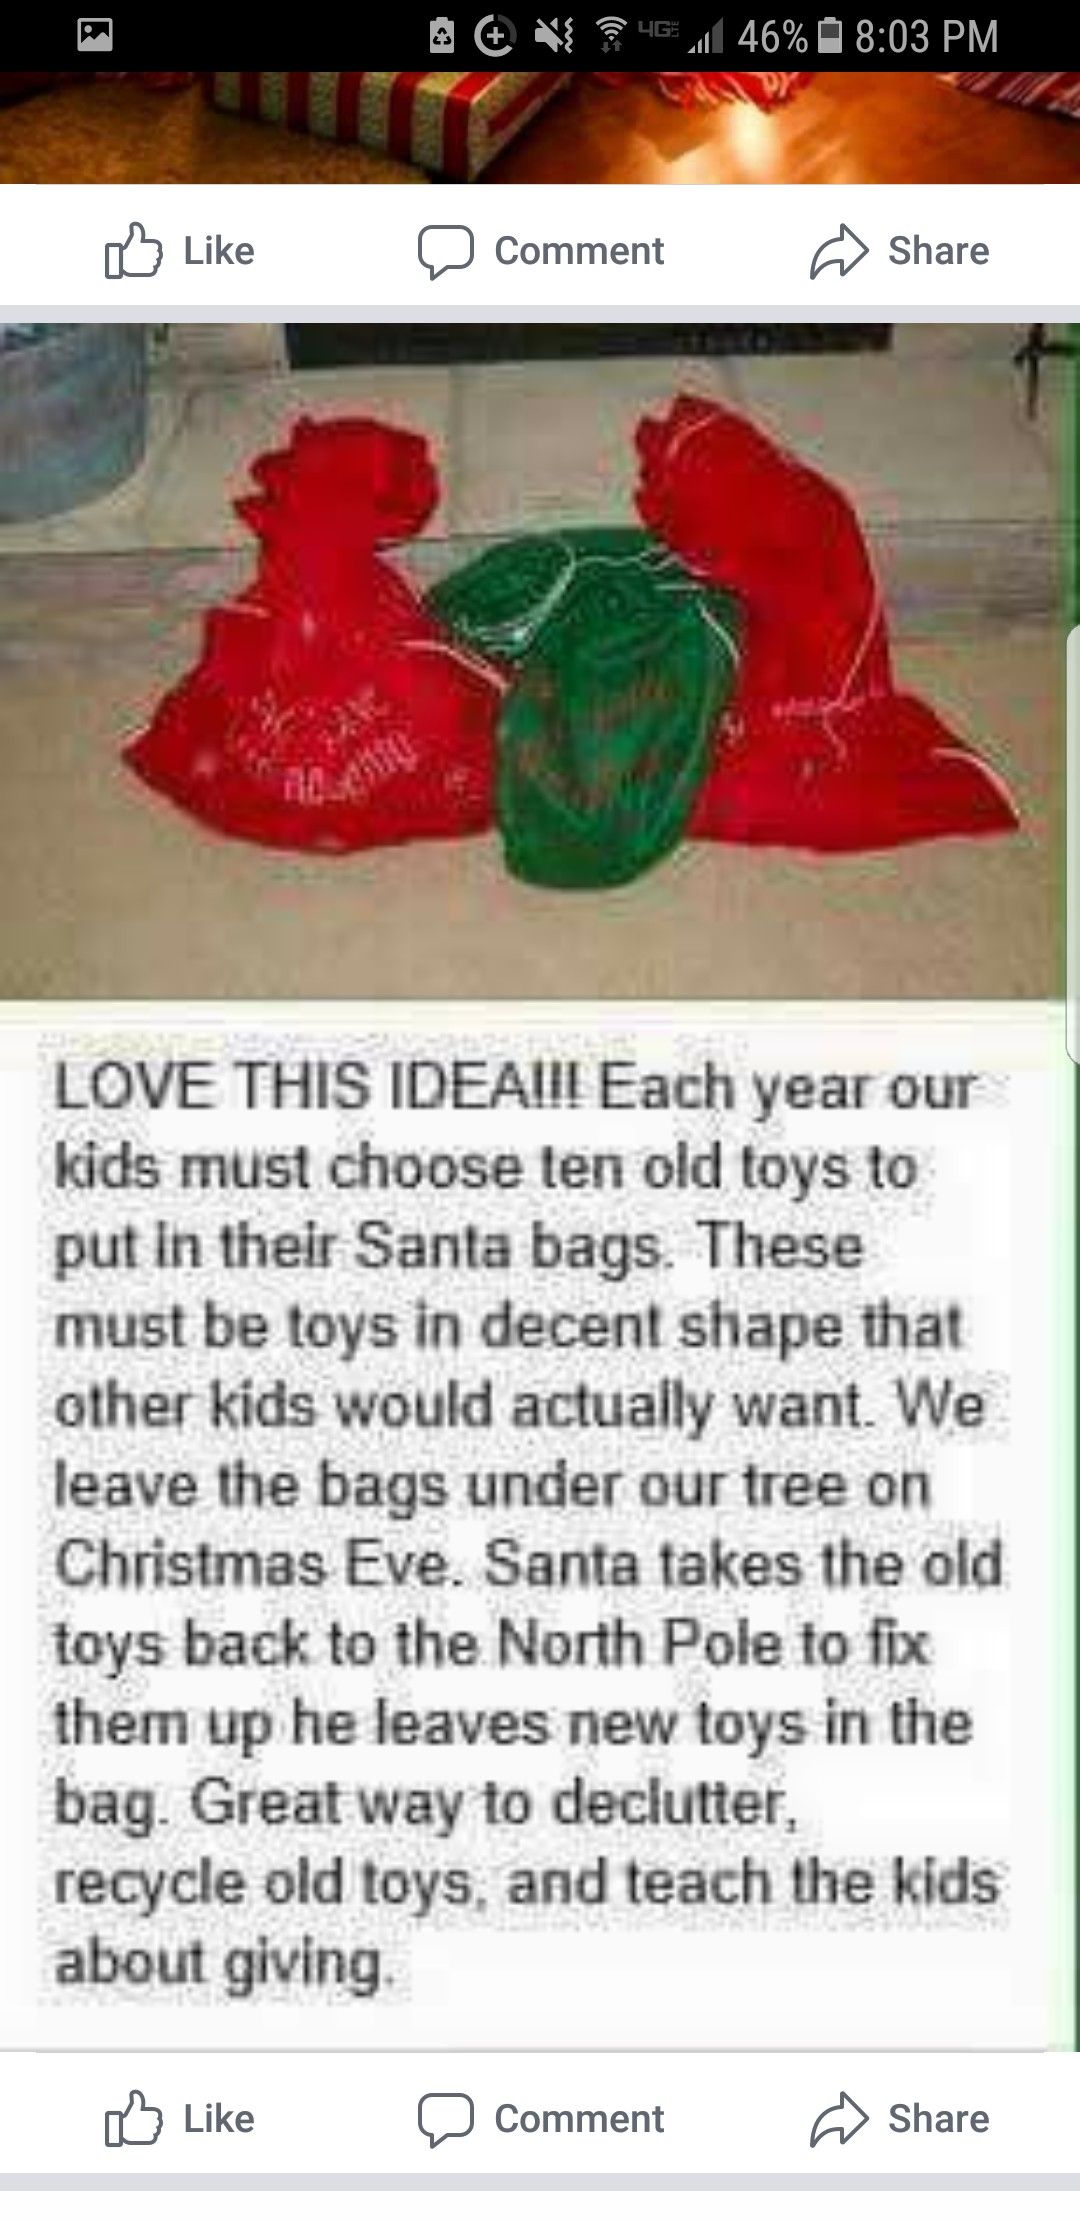 Pin By Fay Wesseling On Fathers Sdsu Old Toys Santa Bags Christmas Party